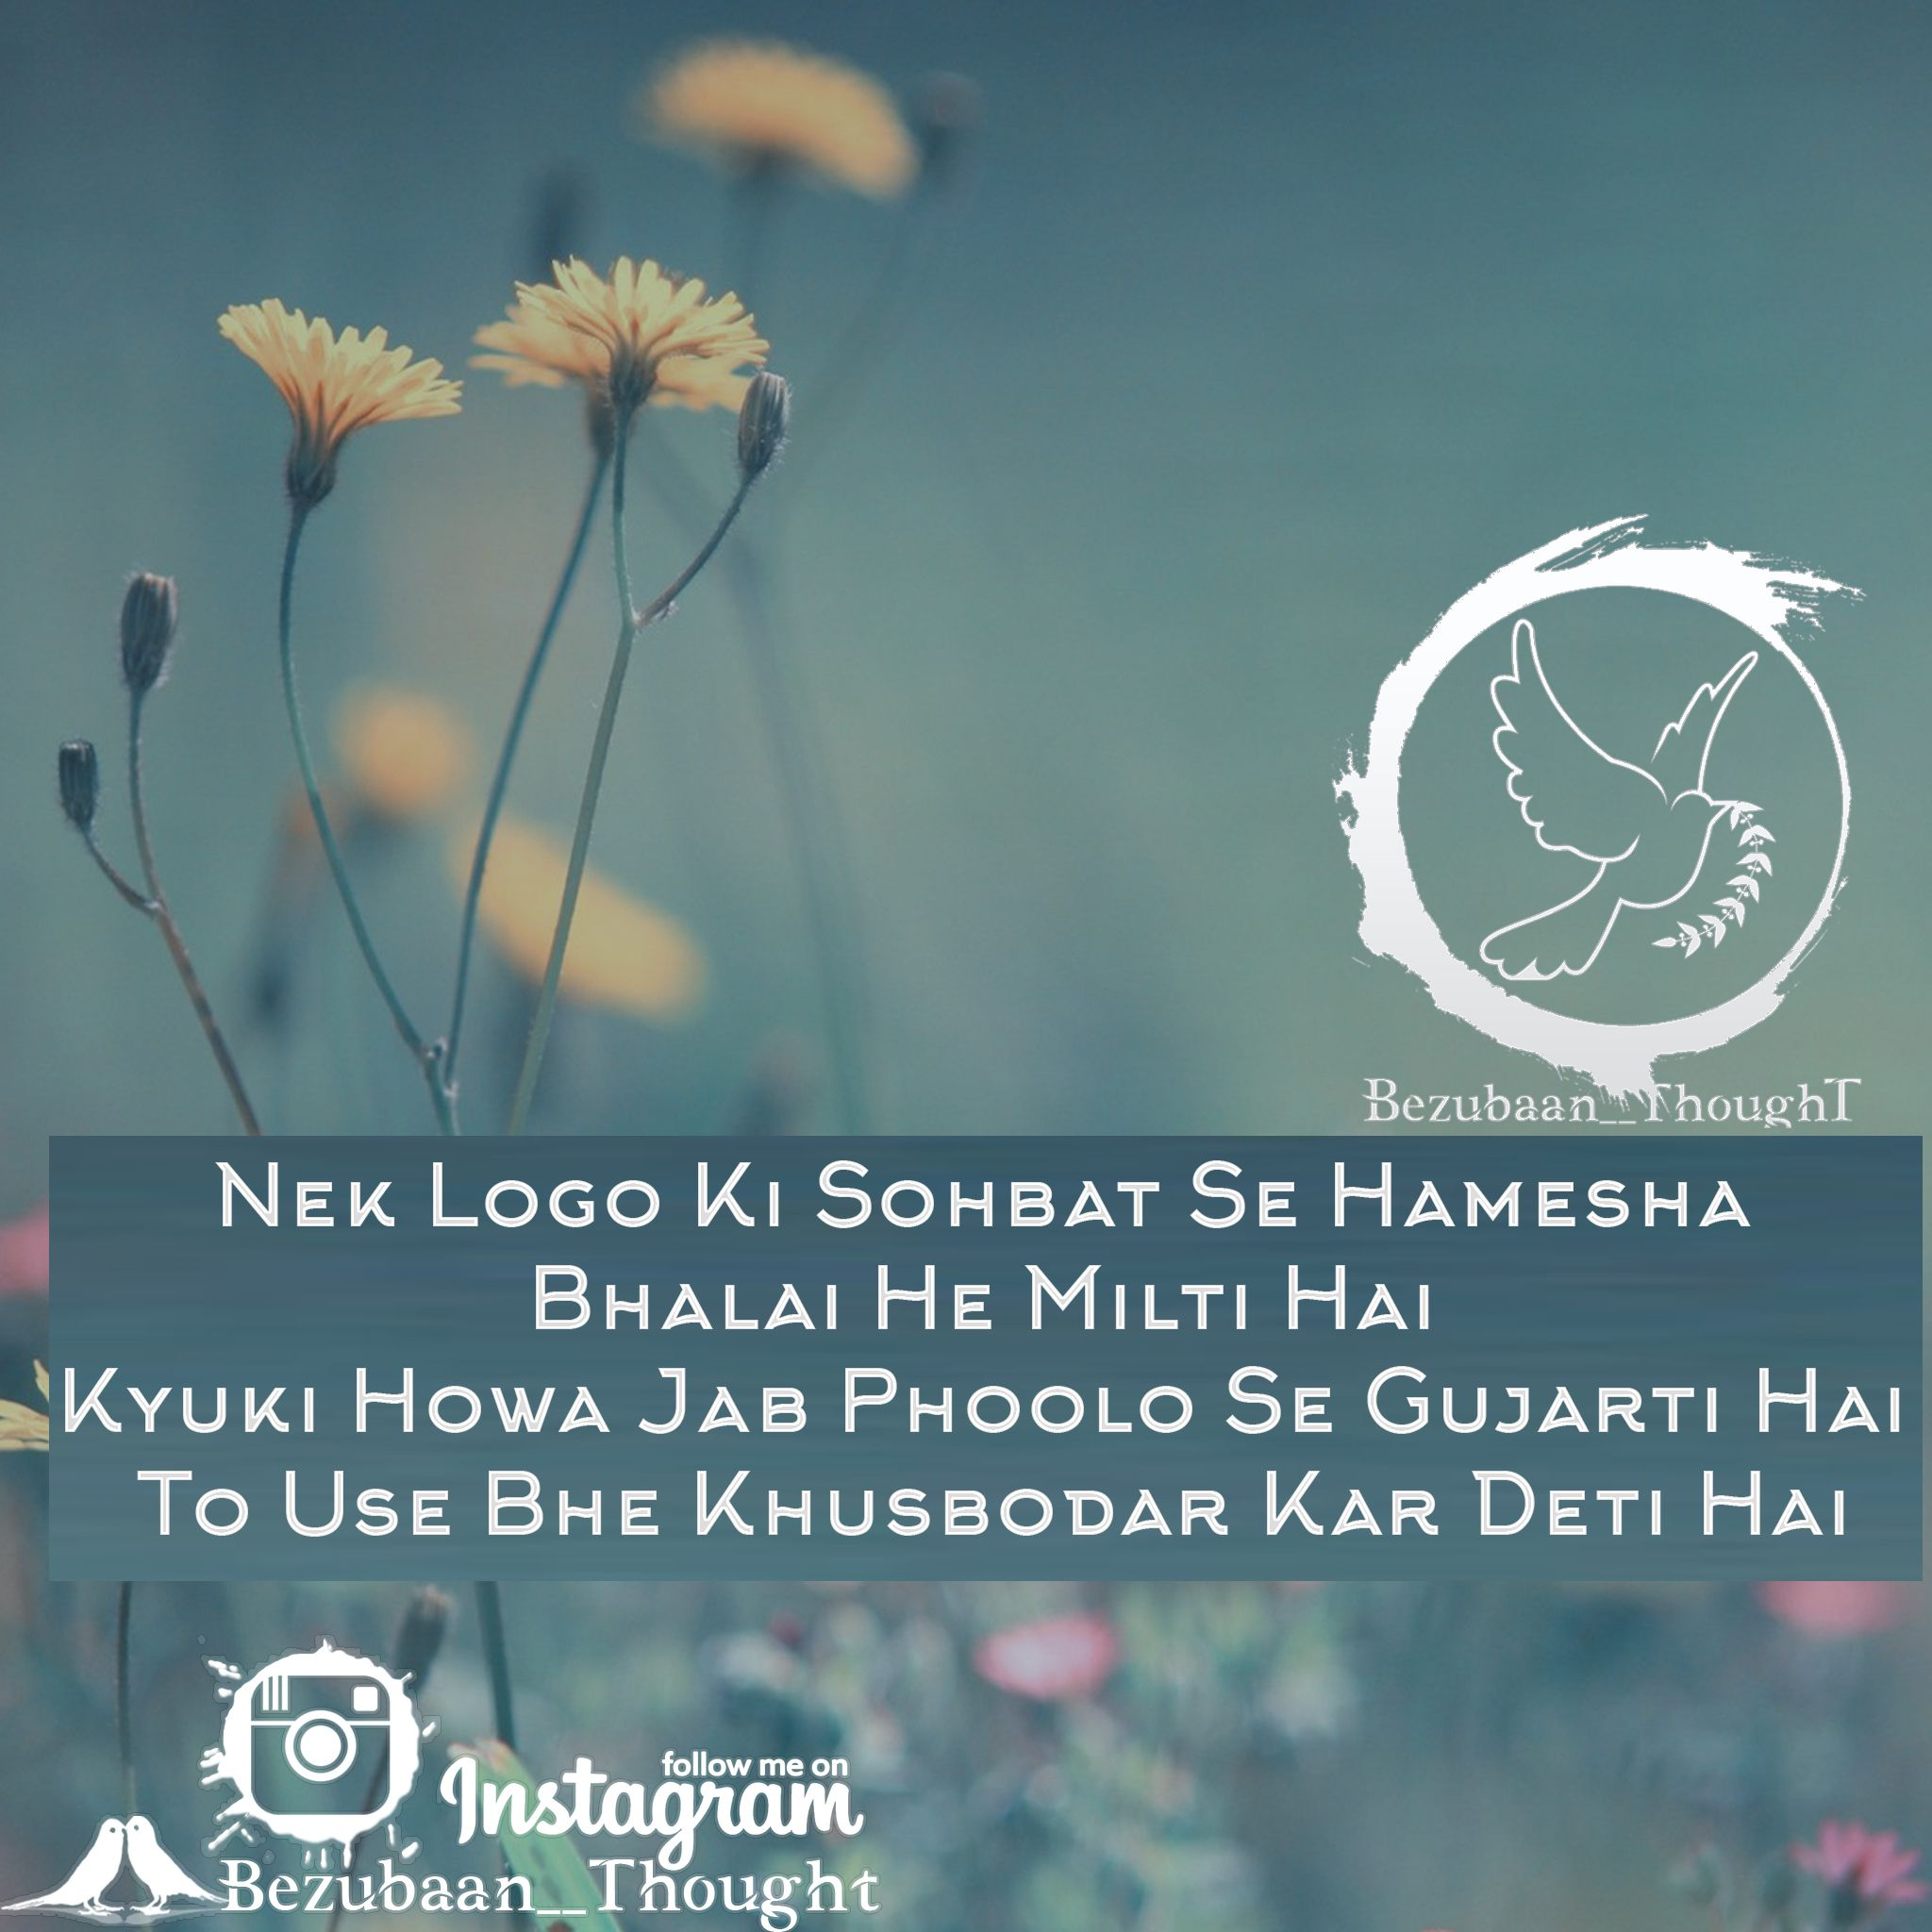 Bezubaan Thought Islamic Quotes Queen Quotes Inspirational Quotes